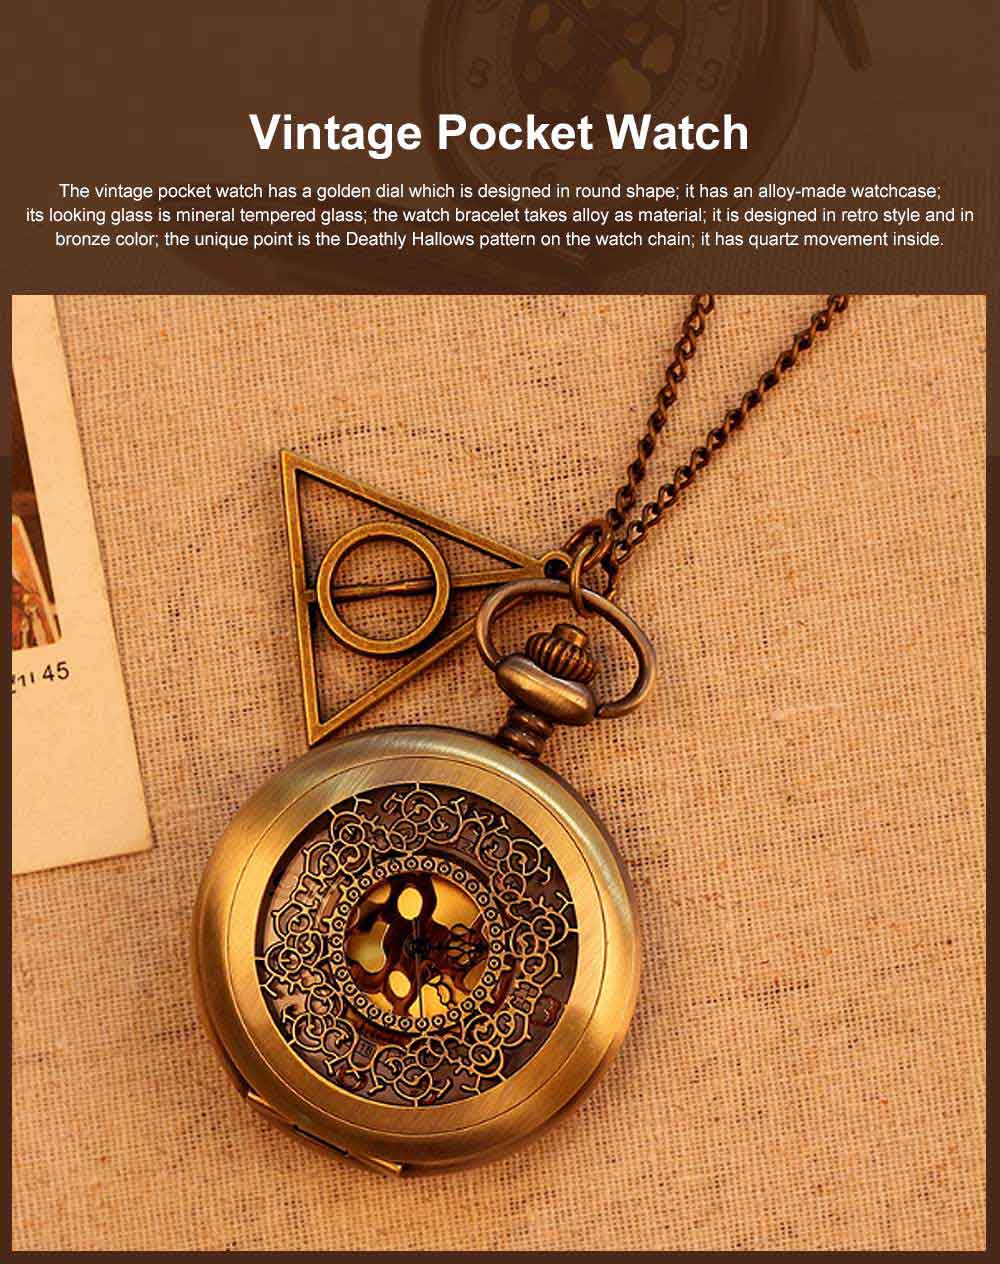 Retro Style Golden Dial Pocket Compass, Hollow-out Vintage Compass with the Deathly Hallows Pattern, Hiking, Camping, Outdoors Compass 0